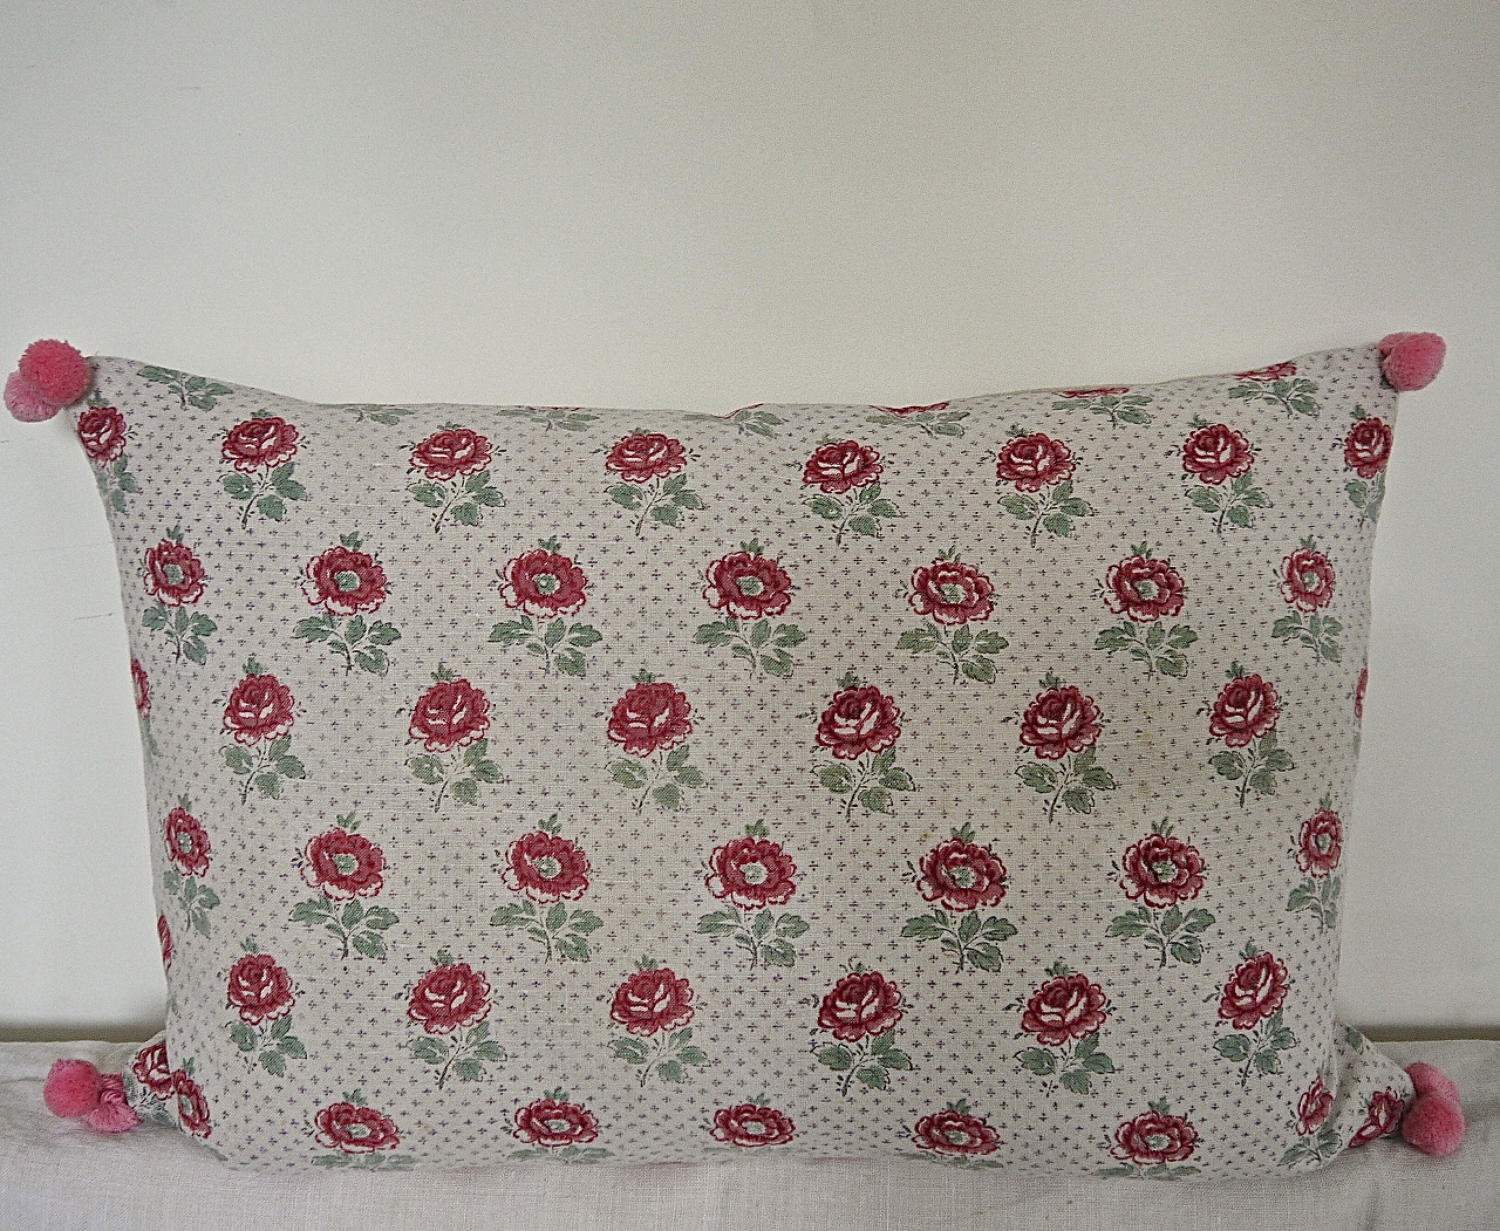 Late 19th Century French Printed Roses Linen Cushion